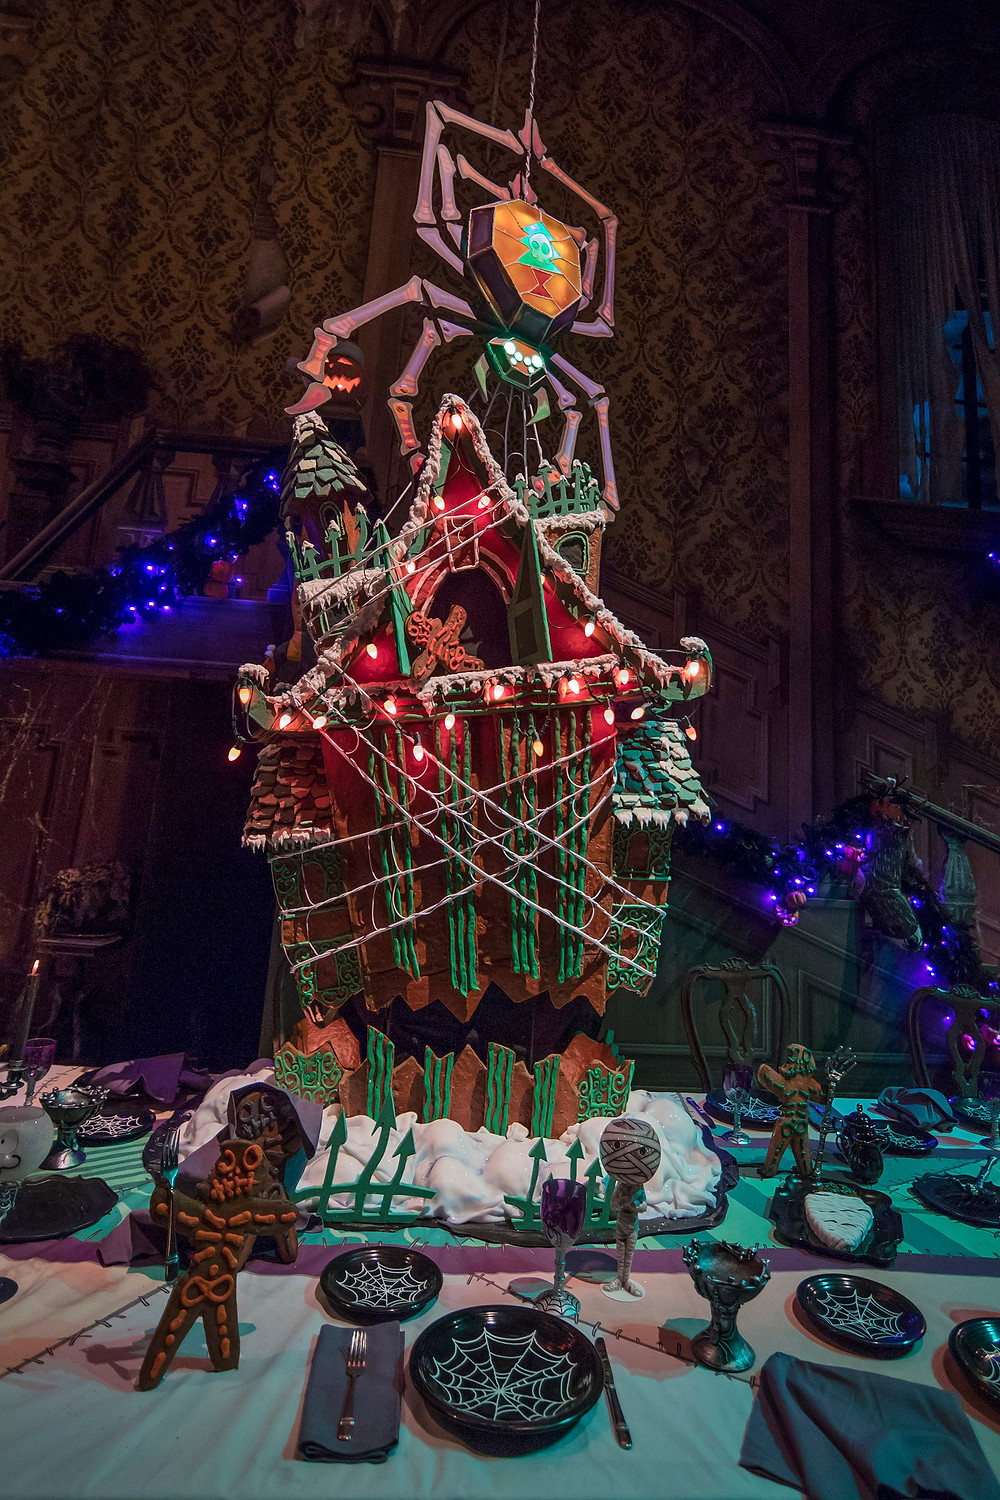 First Look: 2018 Disneyland Haunted Mansion Holiday Gingerbread House